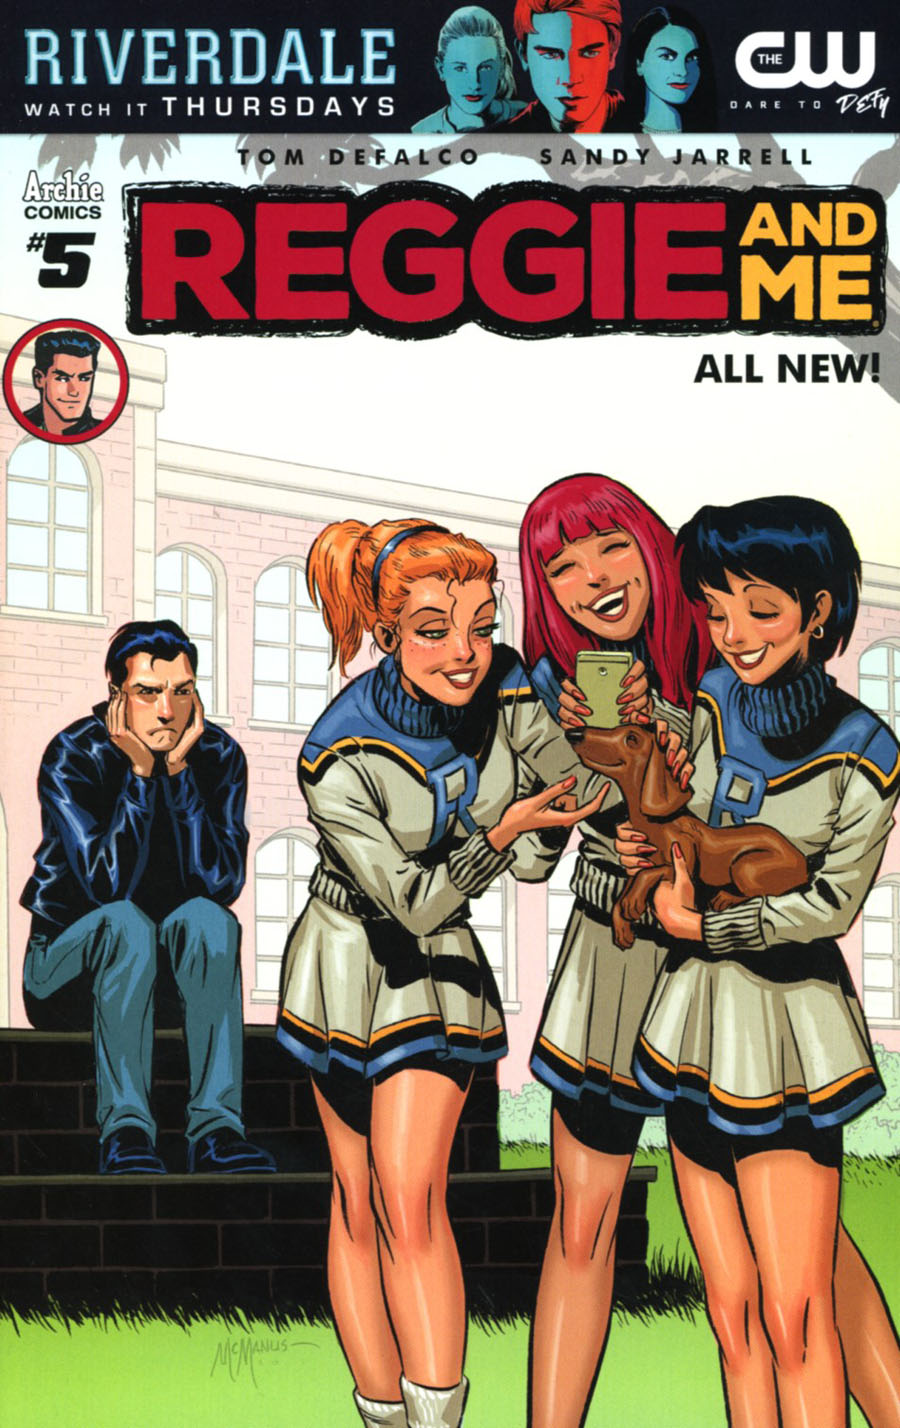 Reggie And Me Vol 2 #5 Cover B Variant Shawn McManus Cover